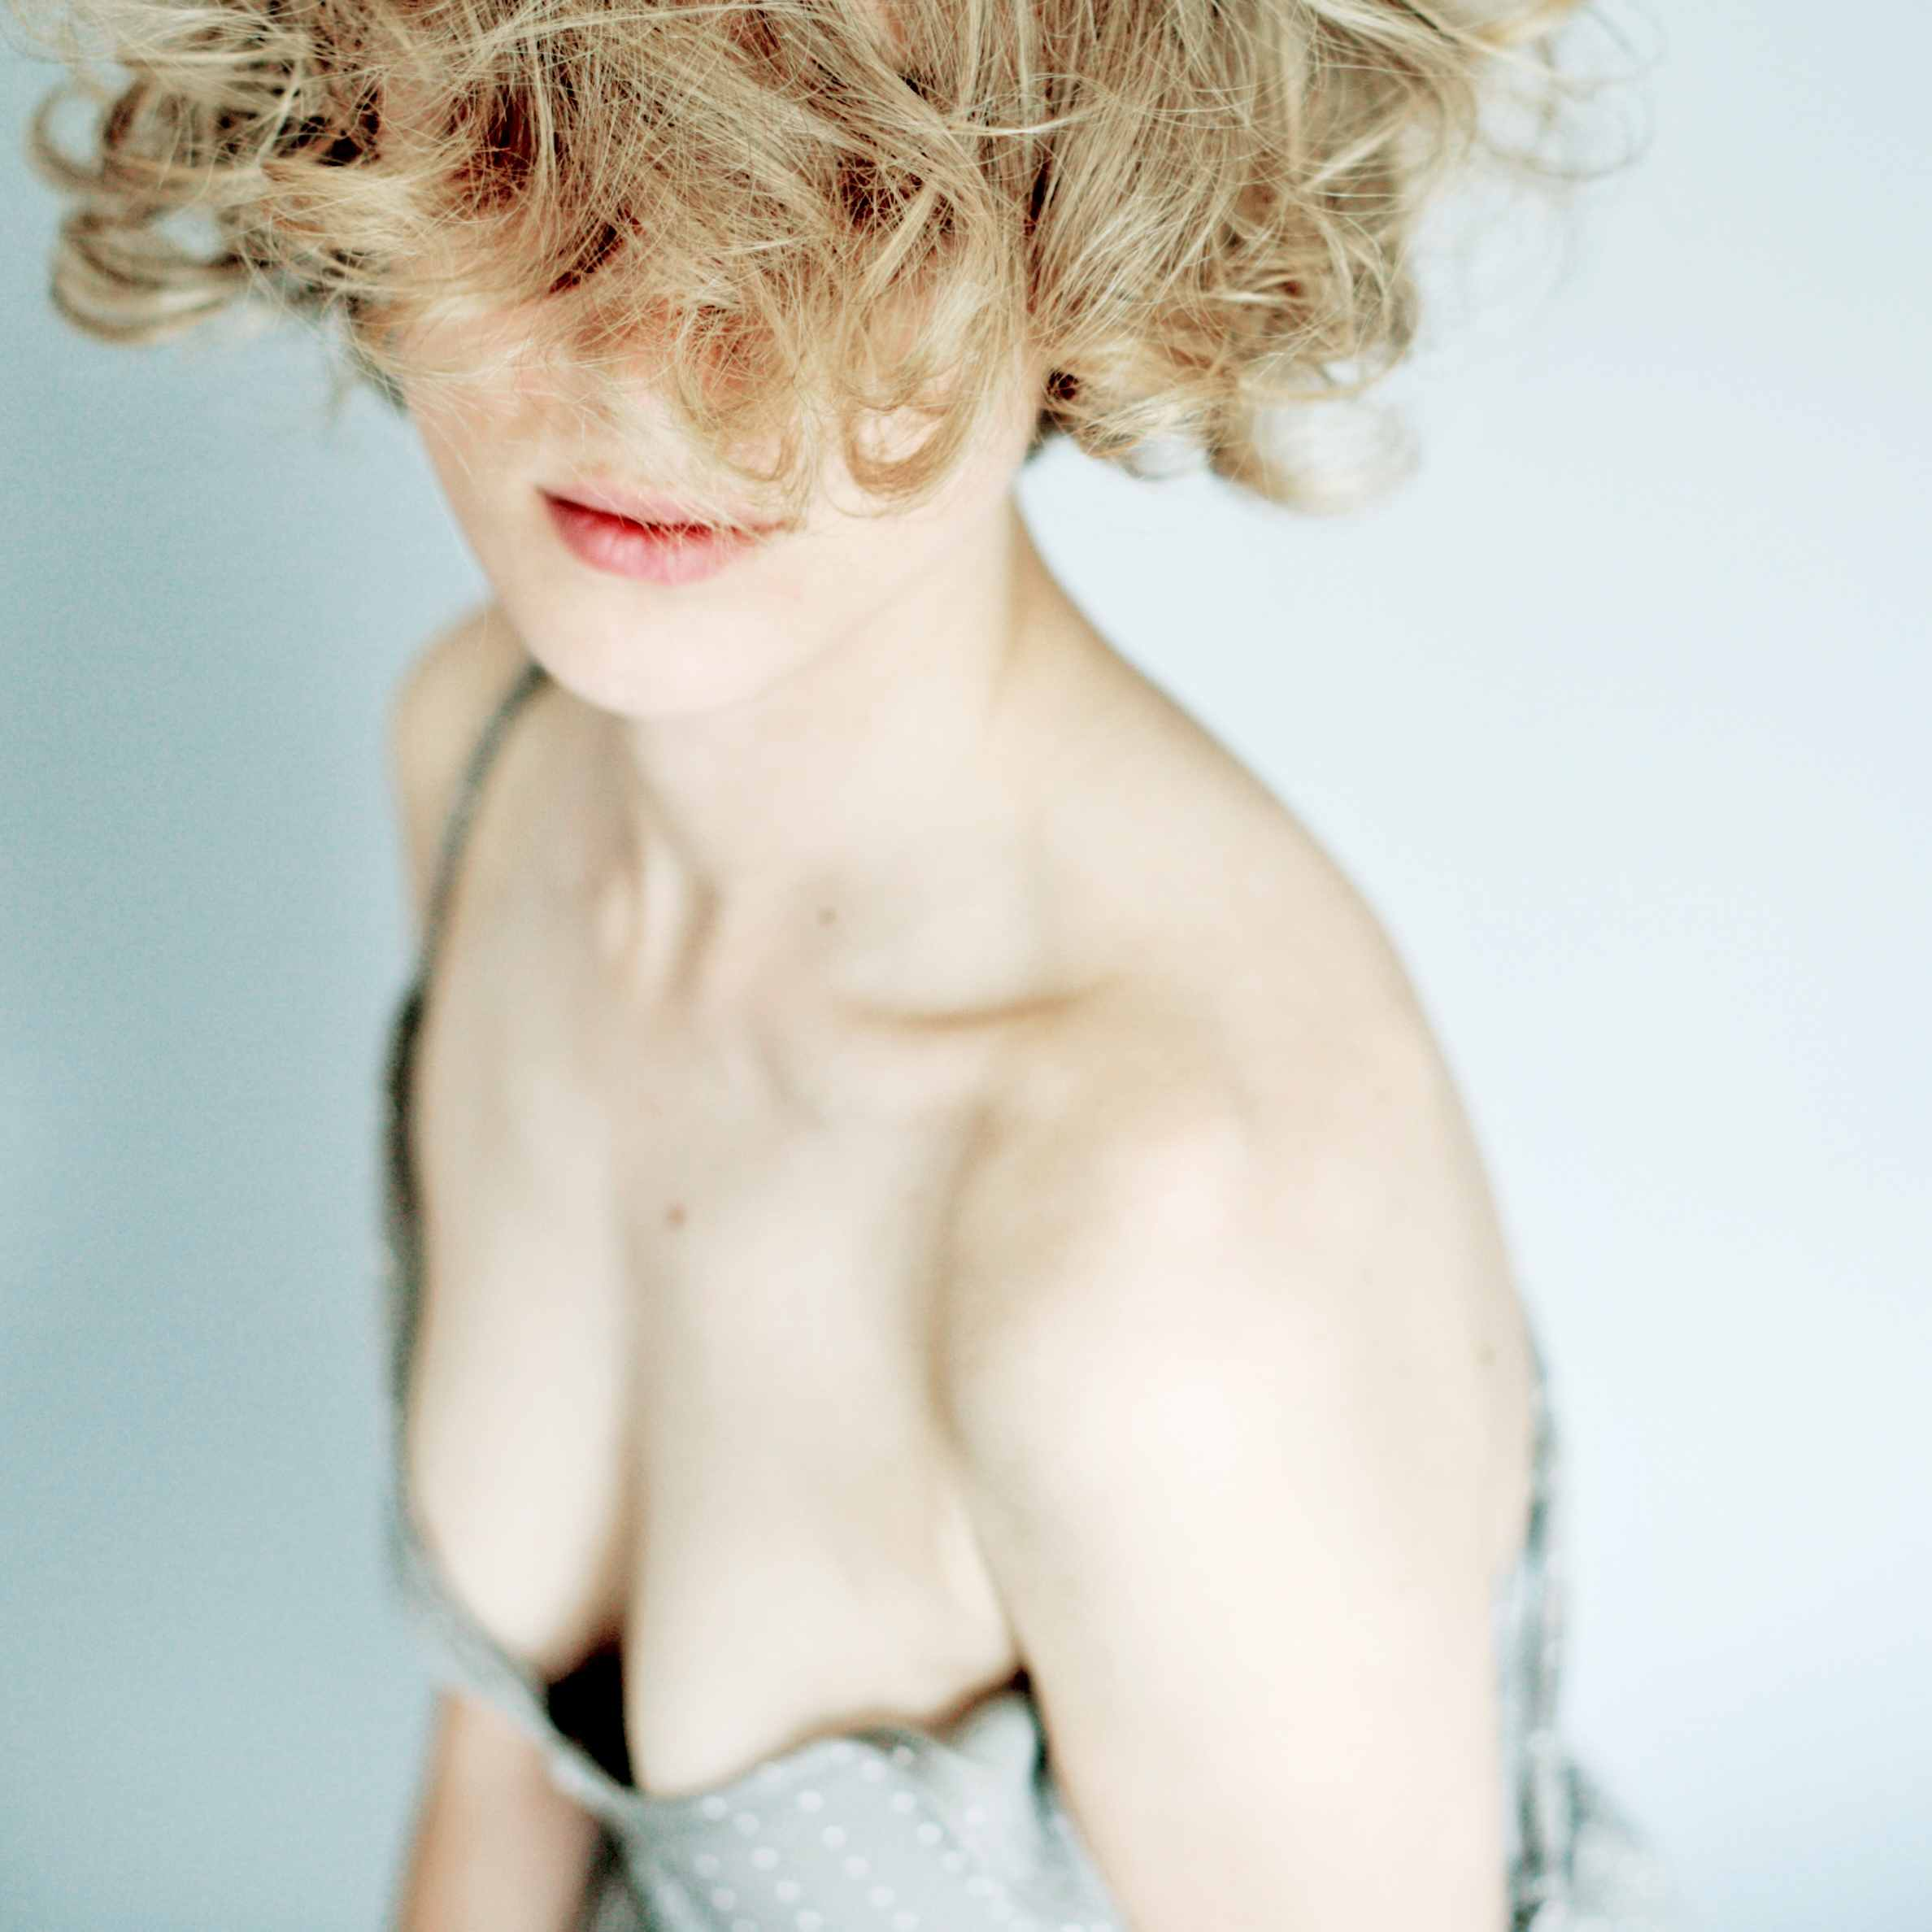 White woman with blonde curls